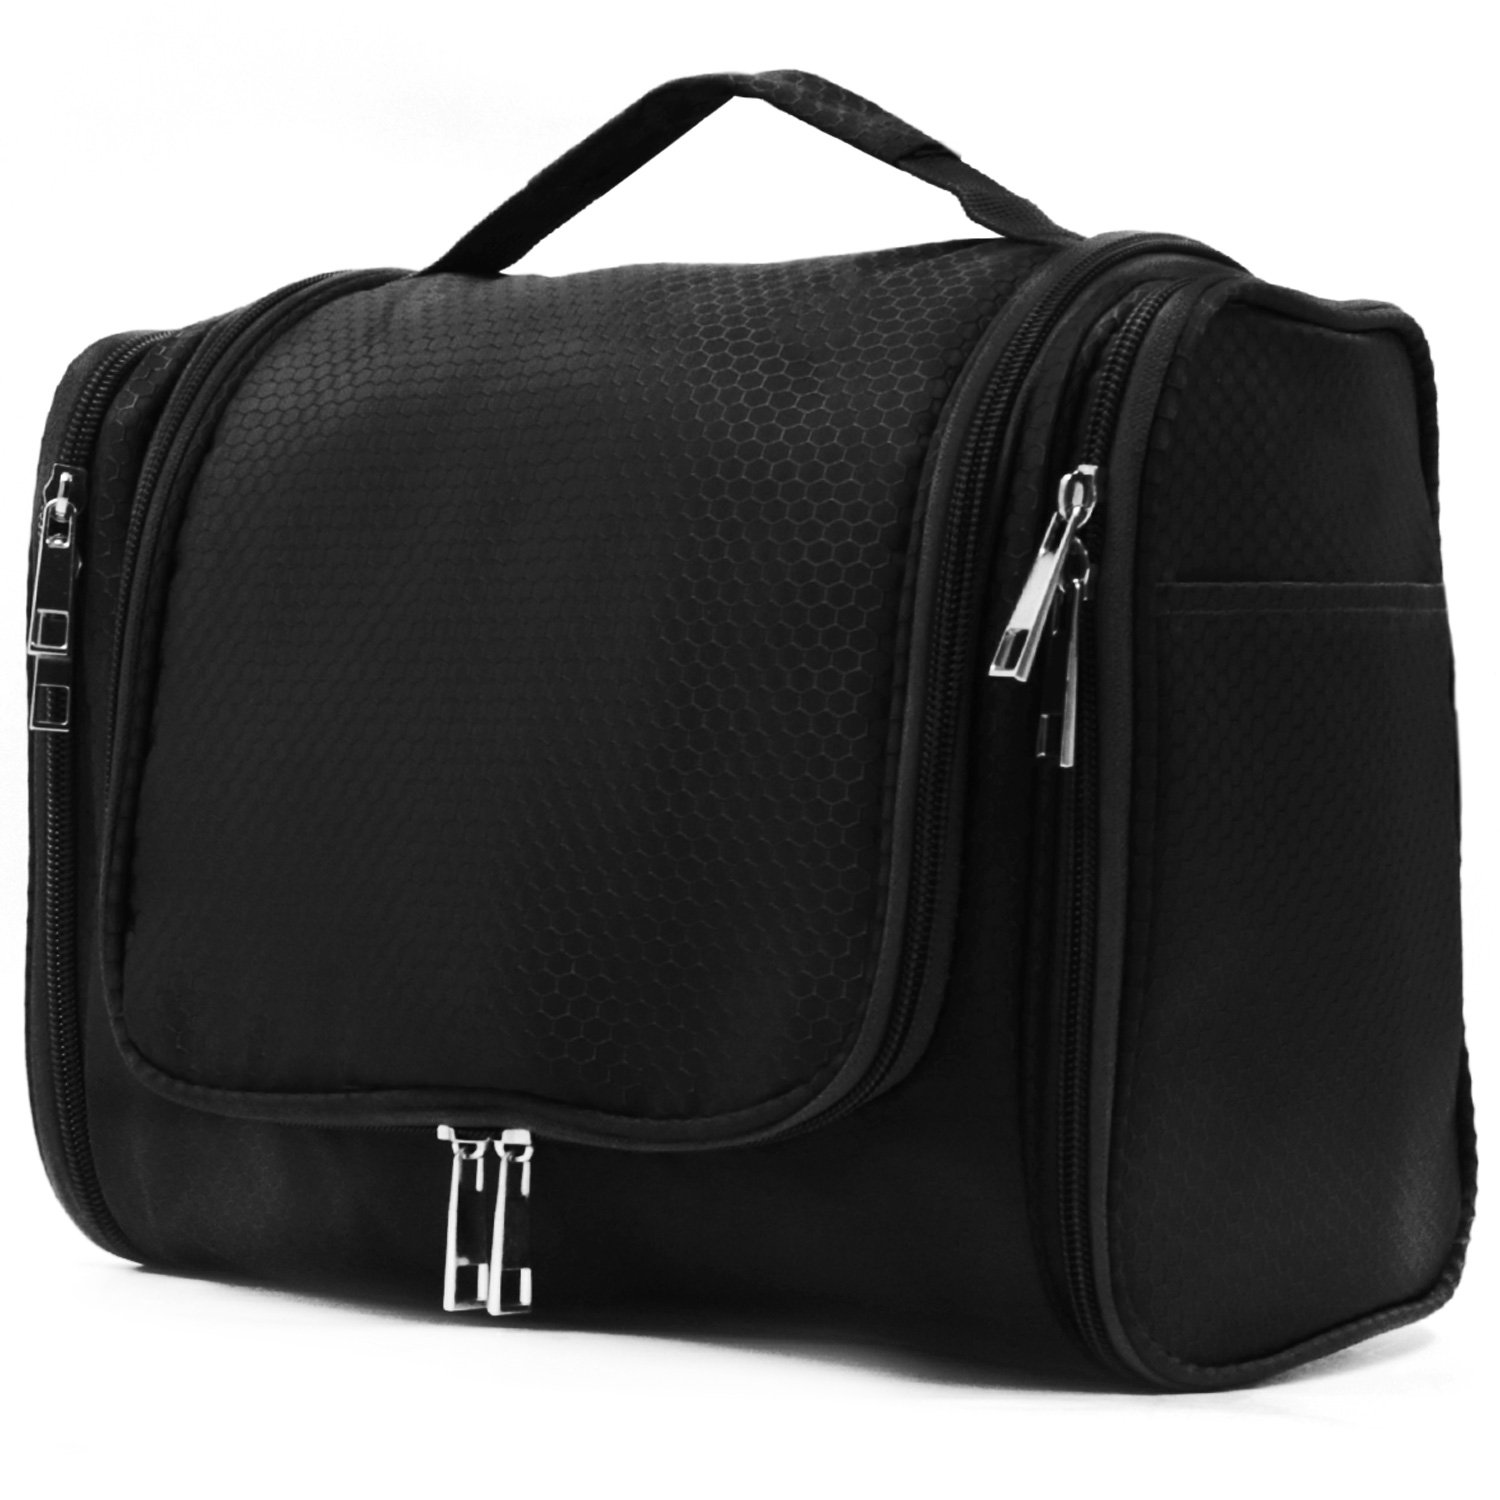 14fb54e94654 Amazon.com   Lifewit Hanging Toiletry Bag Extra Large Waterproof ...